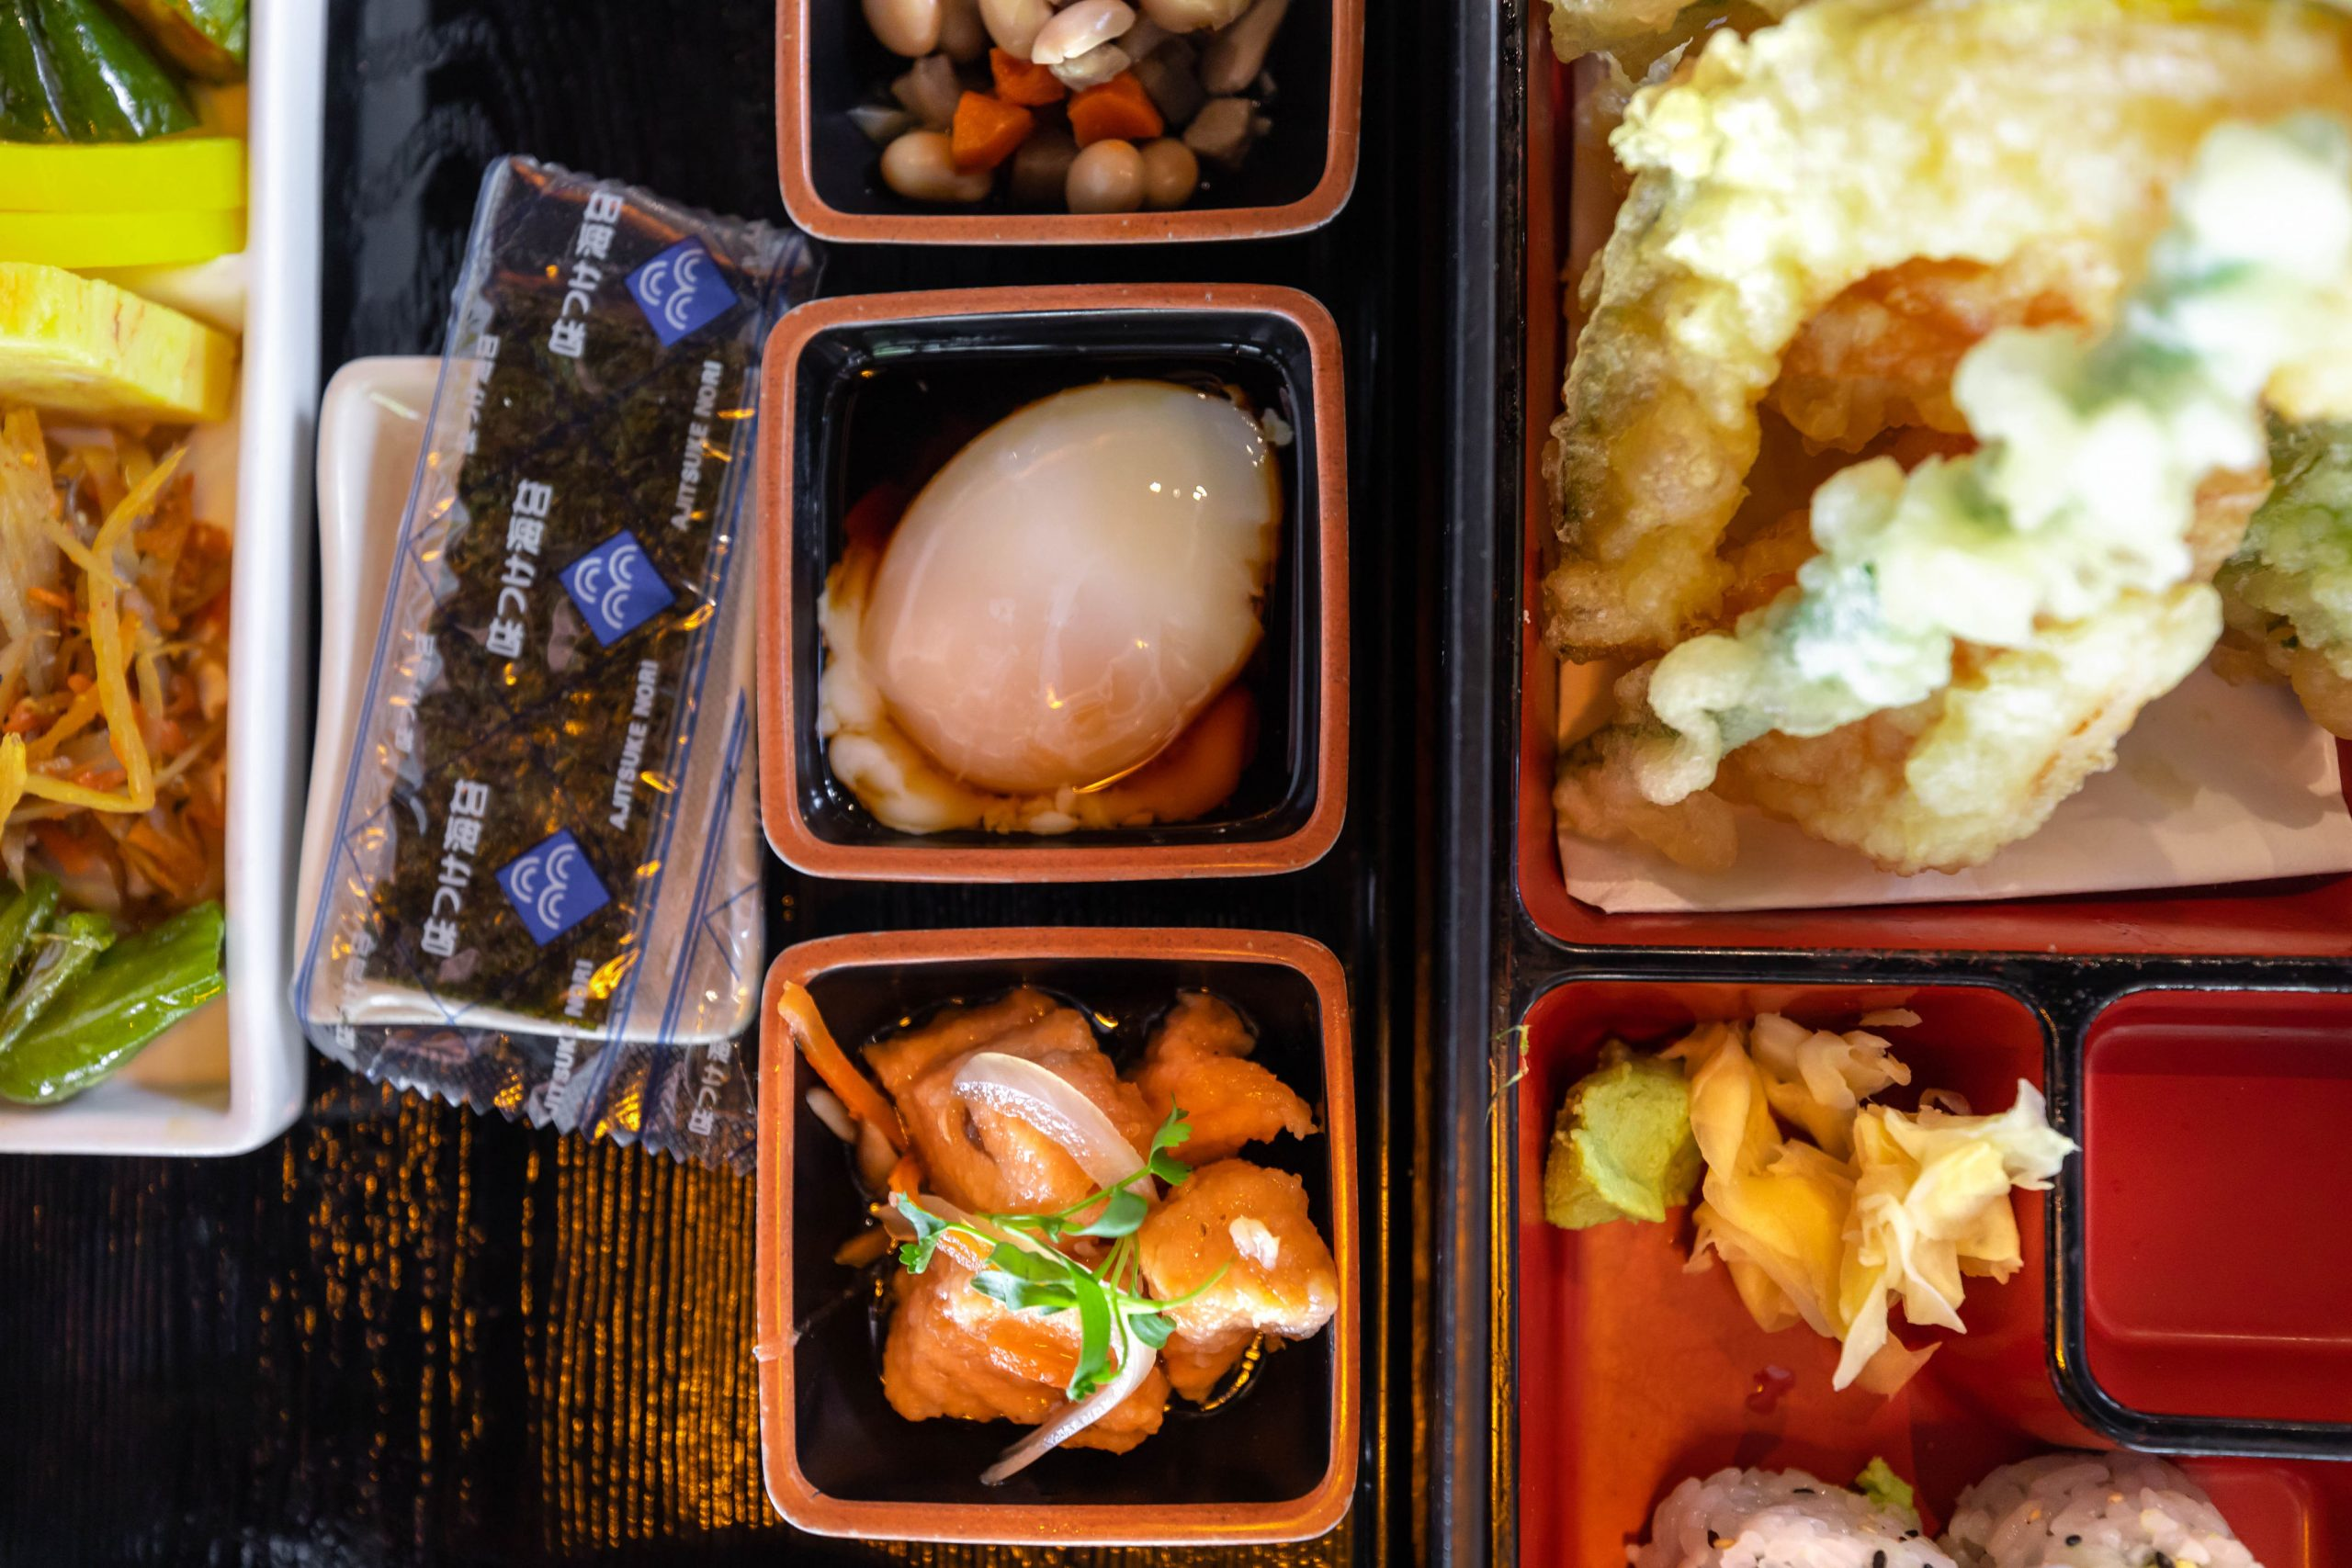 Rükuya Japanese, Chinese Thai Restaurant Bento Box Lunch in Georgetown Washington DC photographed by Luxury Travel Writer Annie Fairfax